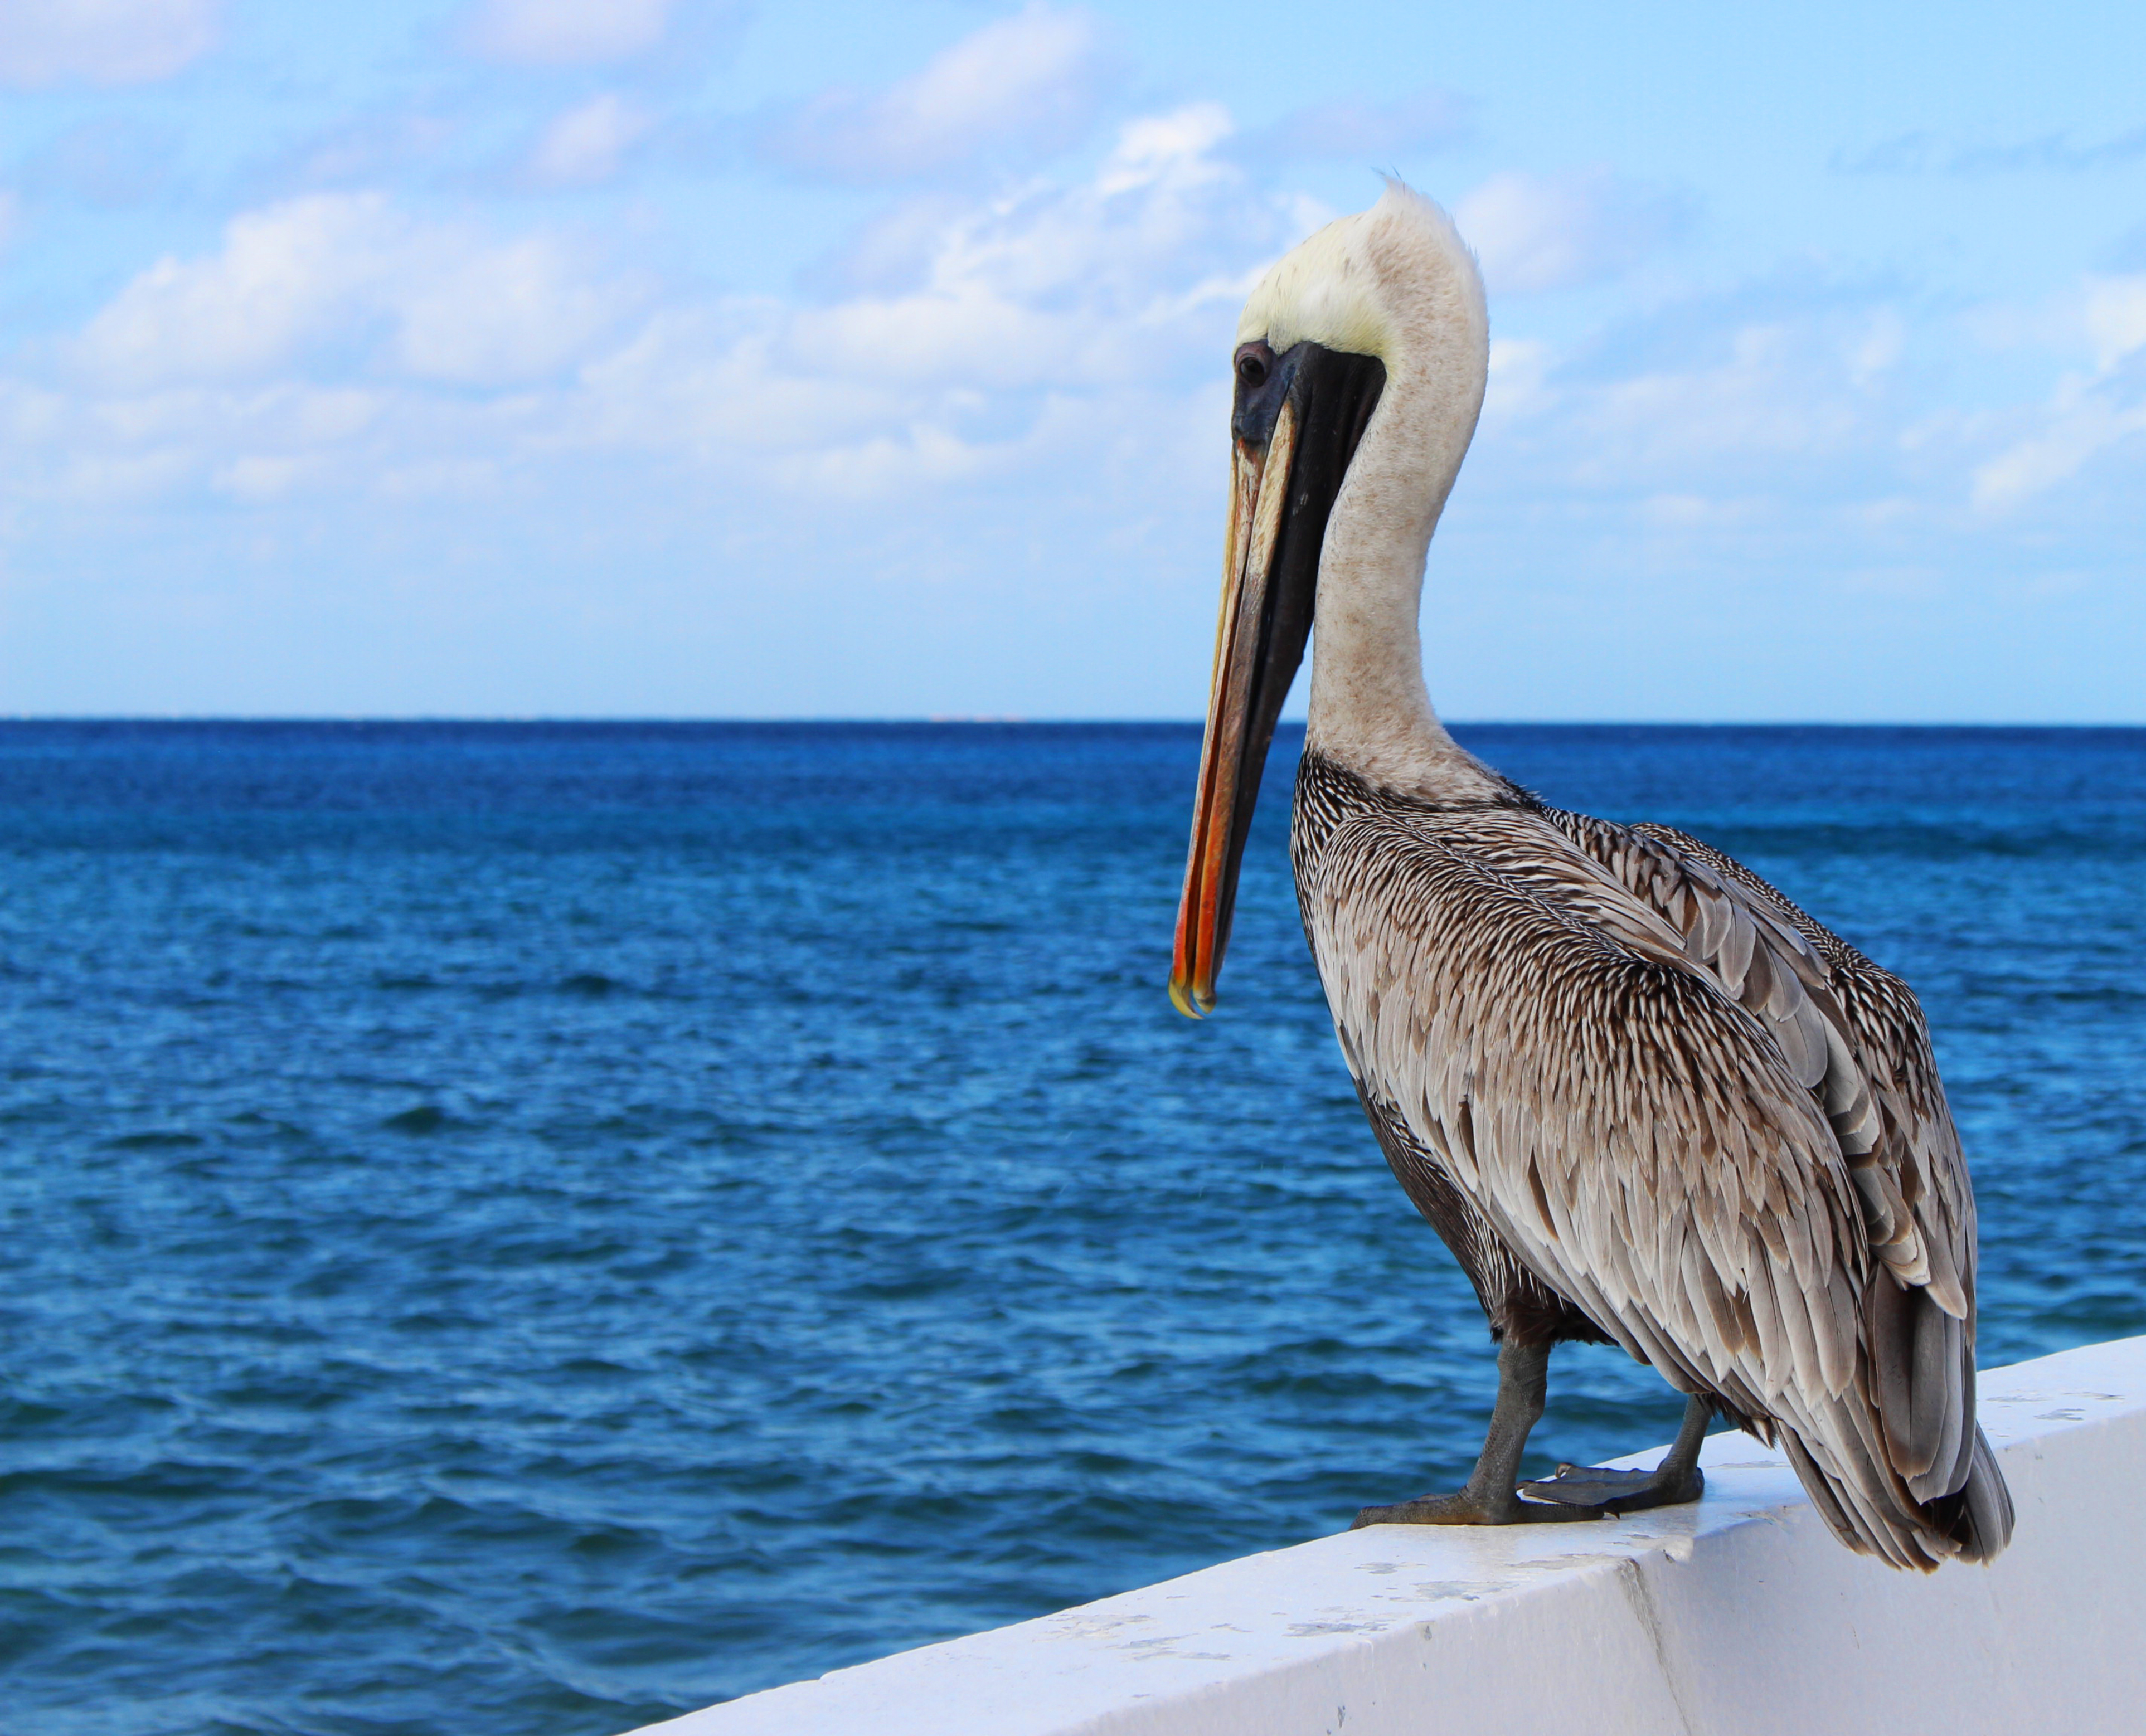 White and brown pelicans at home alo